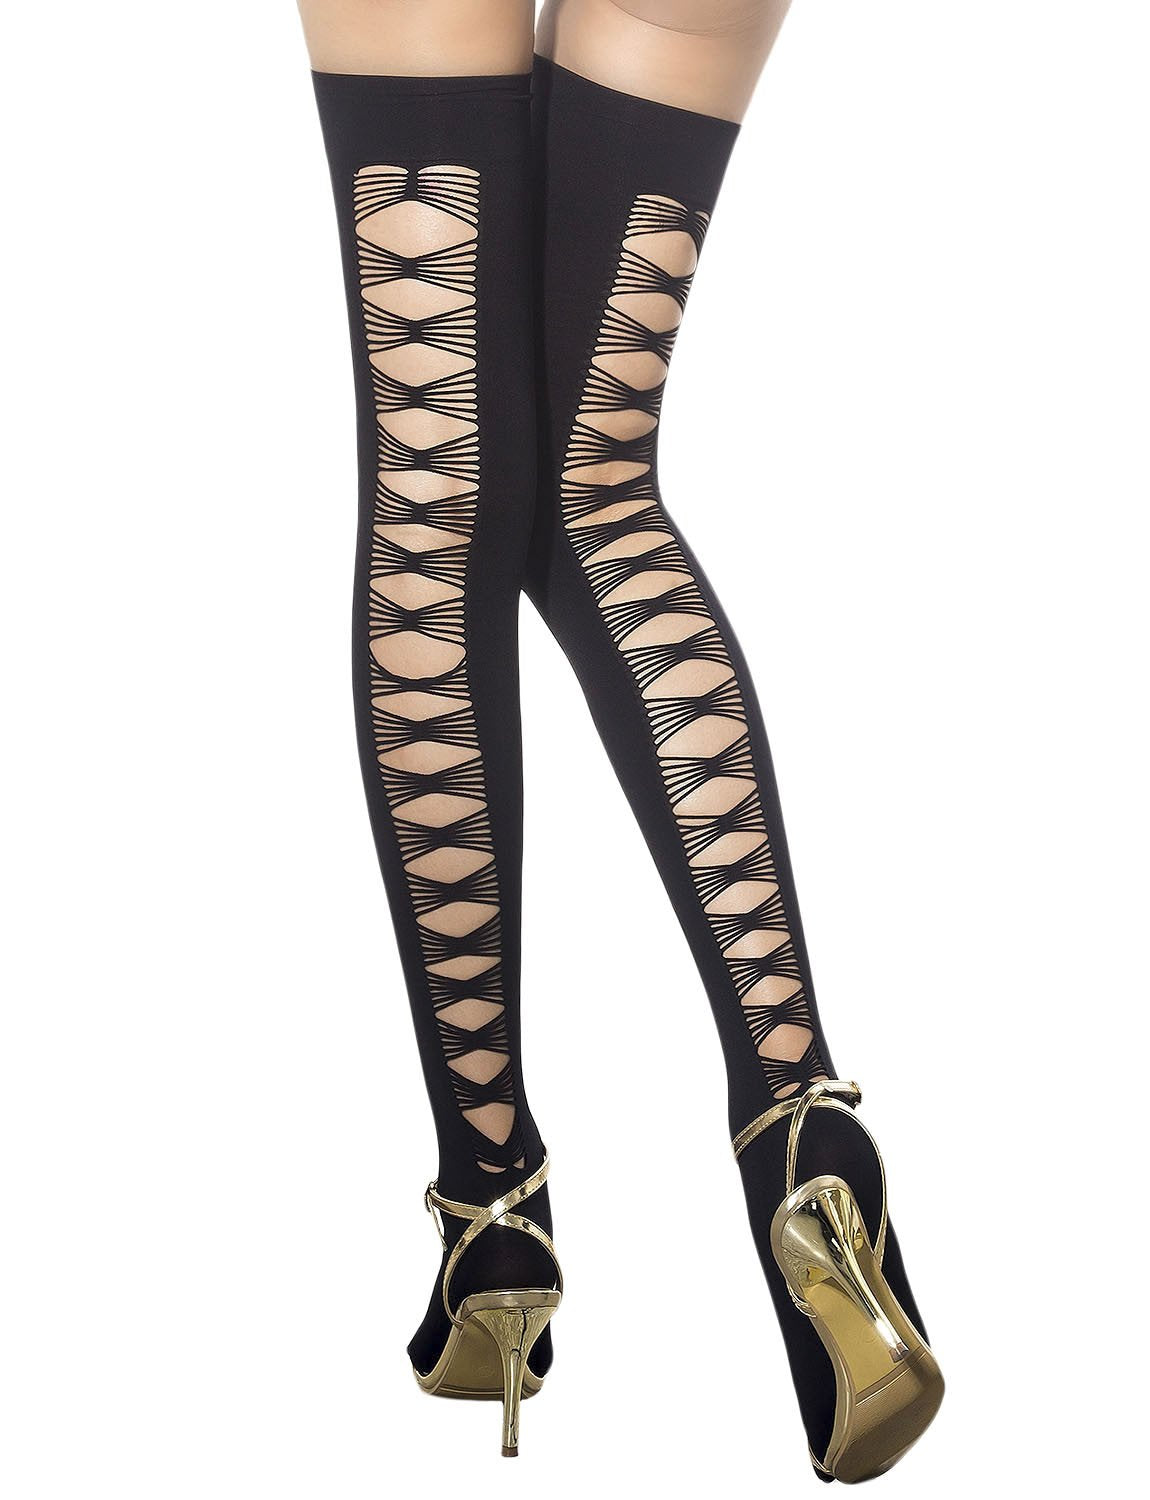 Women's Sexy Back Slashed Tied Ups Japanese Thigh High Hold-up Stockings, Size: One Size, Black